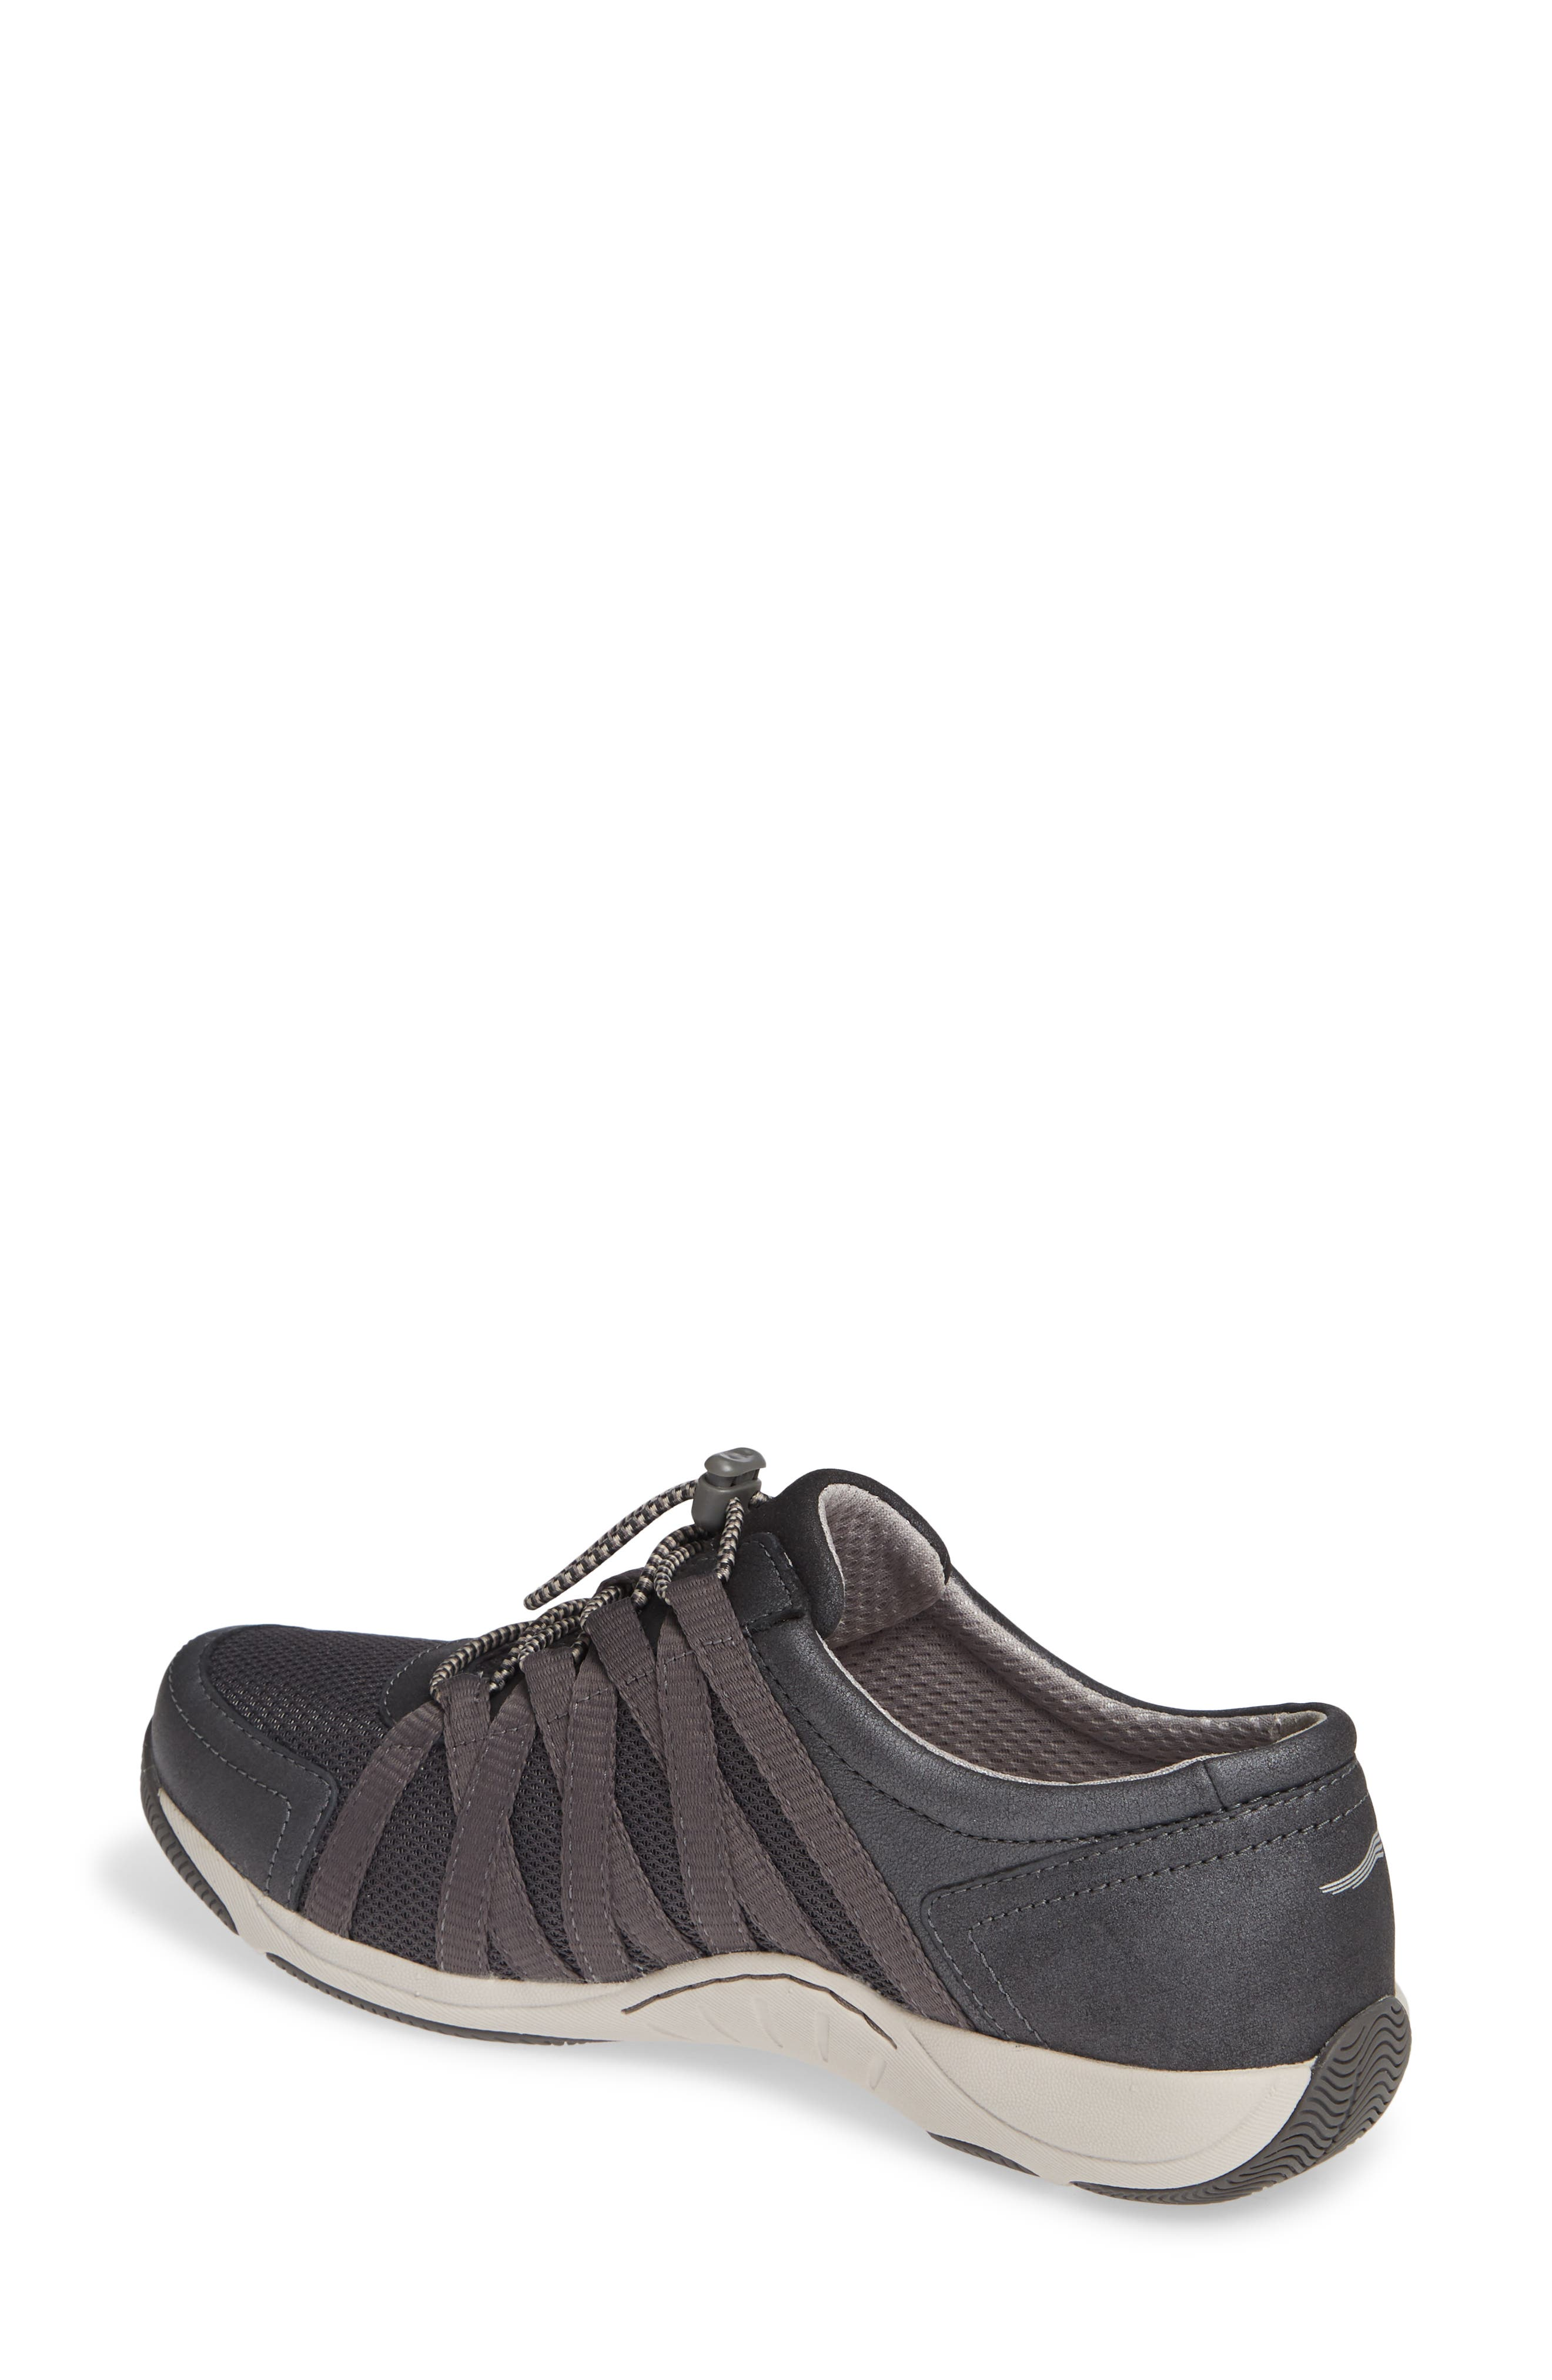 Halifax Collection Honor Sneaker,                             Alternate thumbnail 2, color,                             034